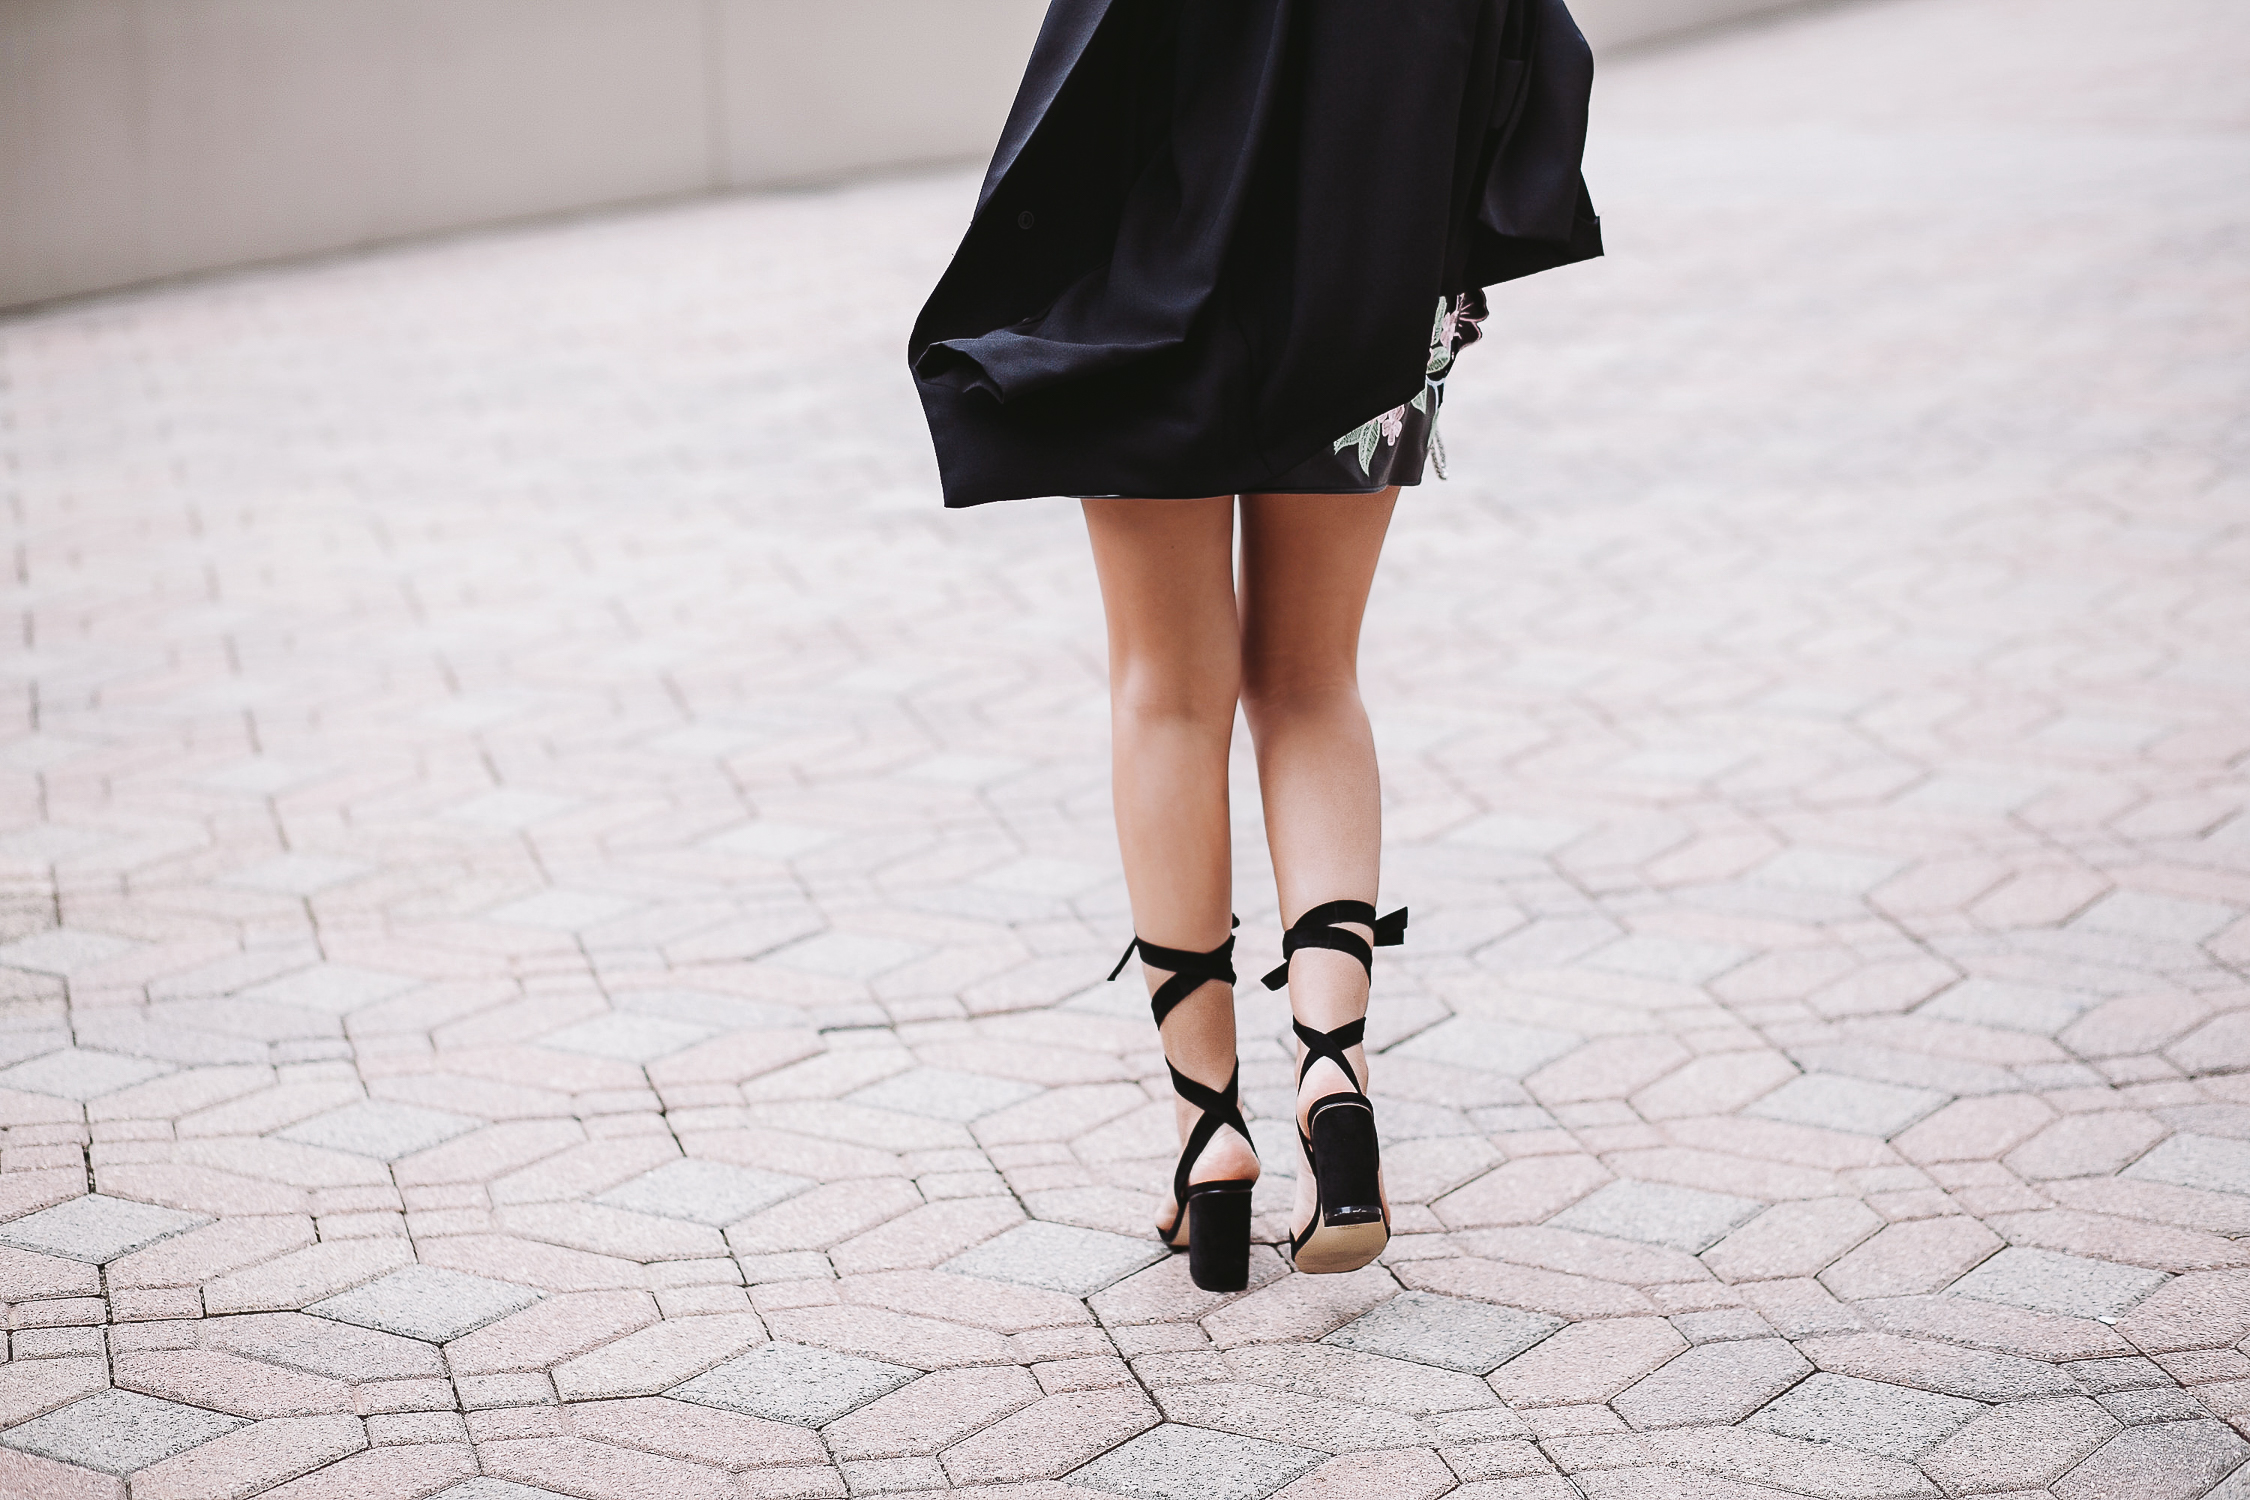 Topshop Lace Up Sandals